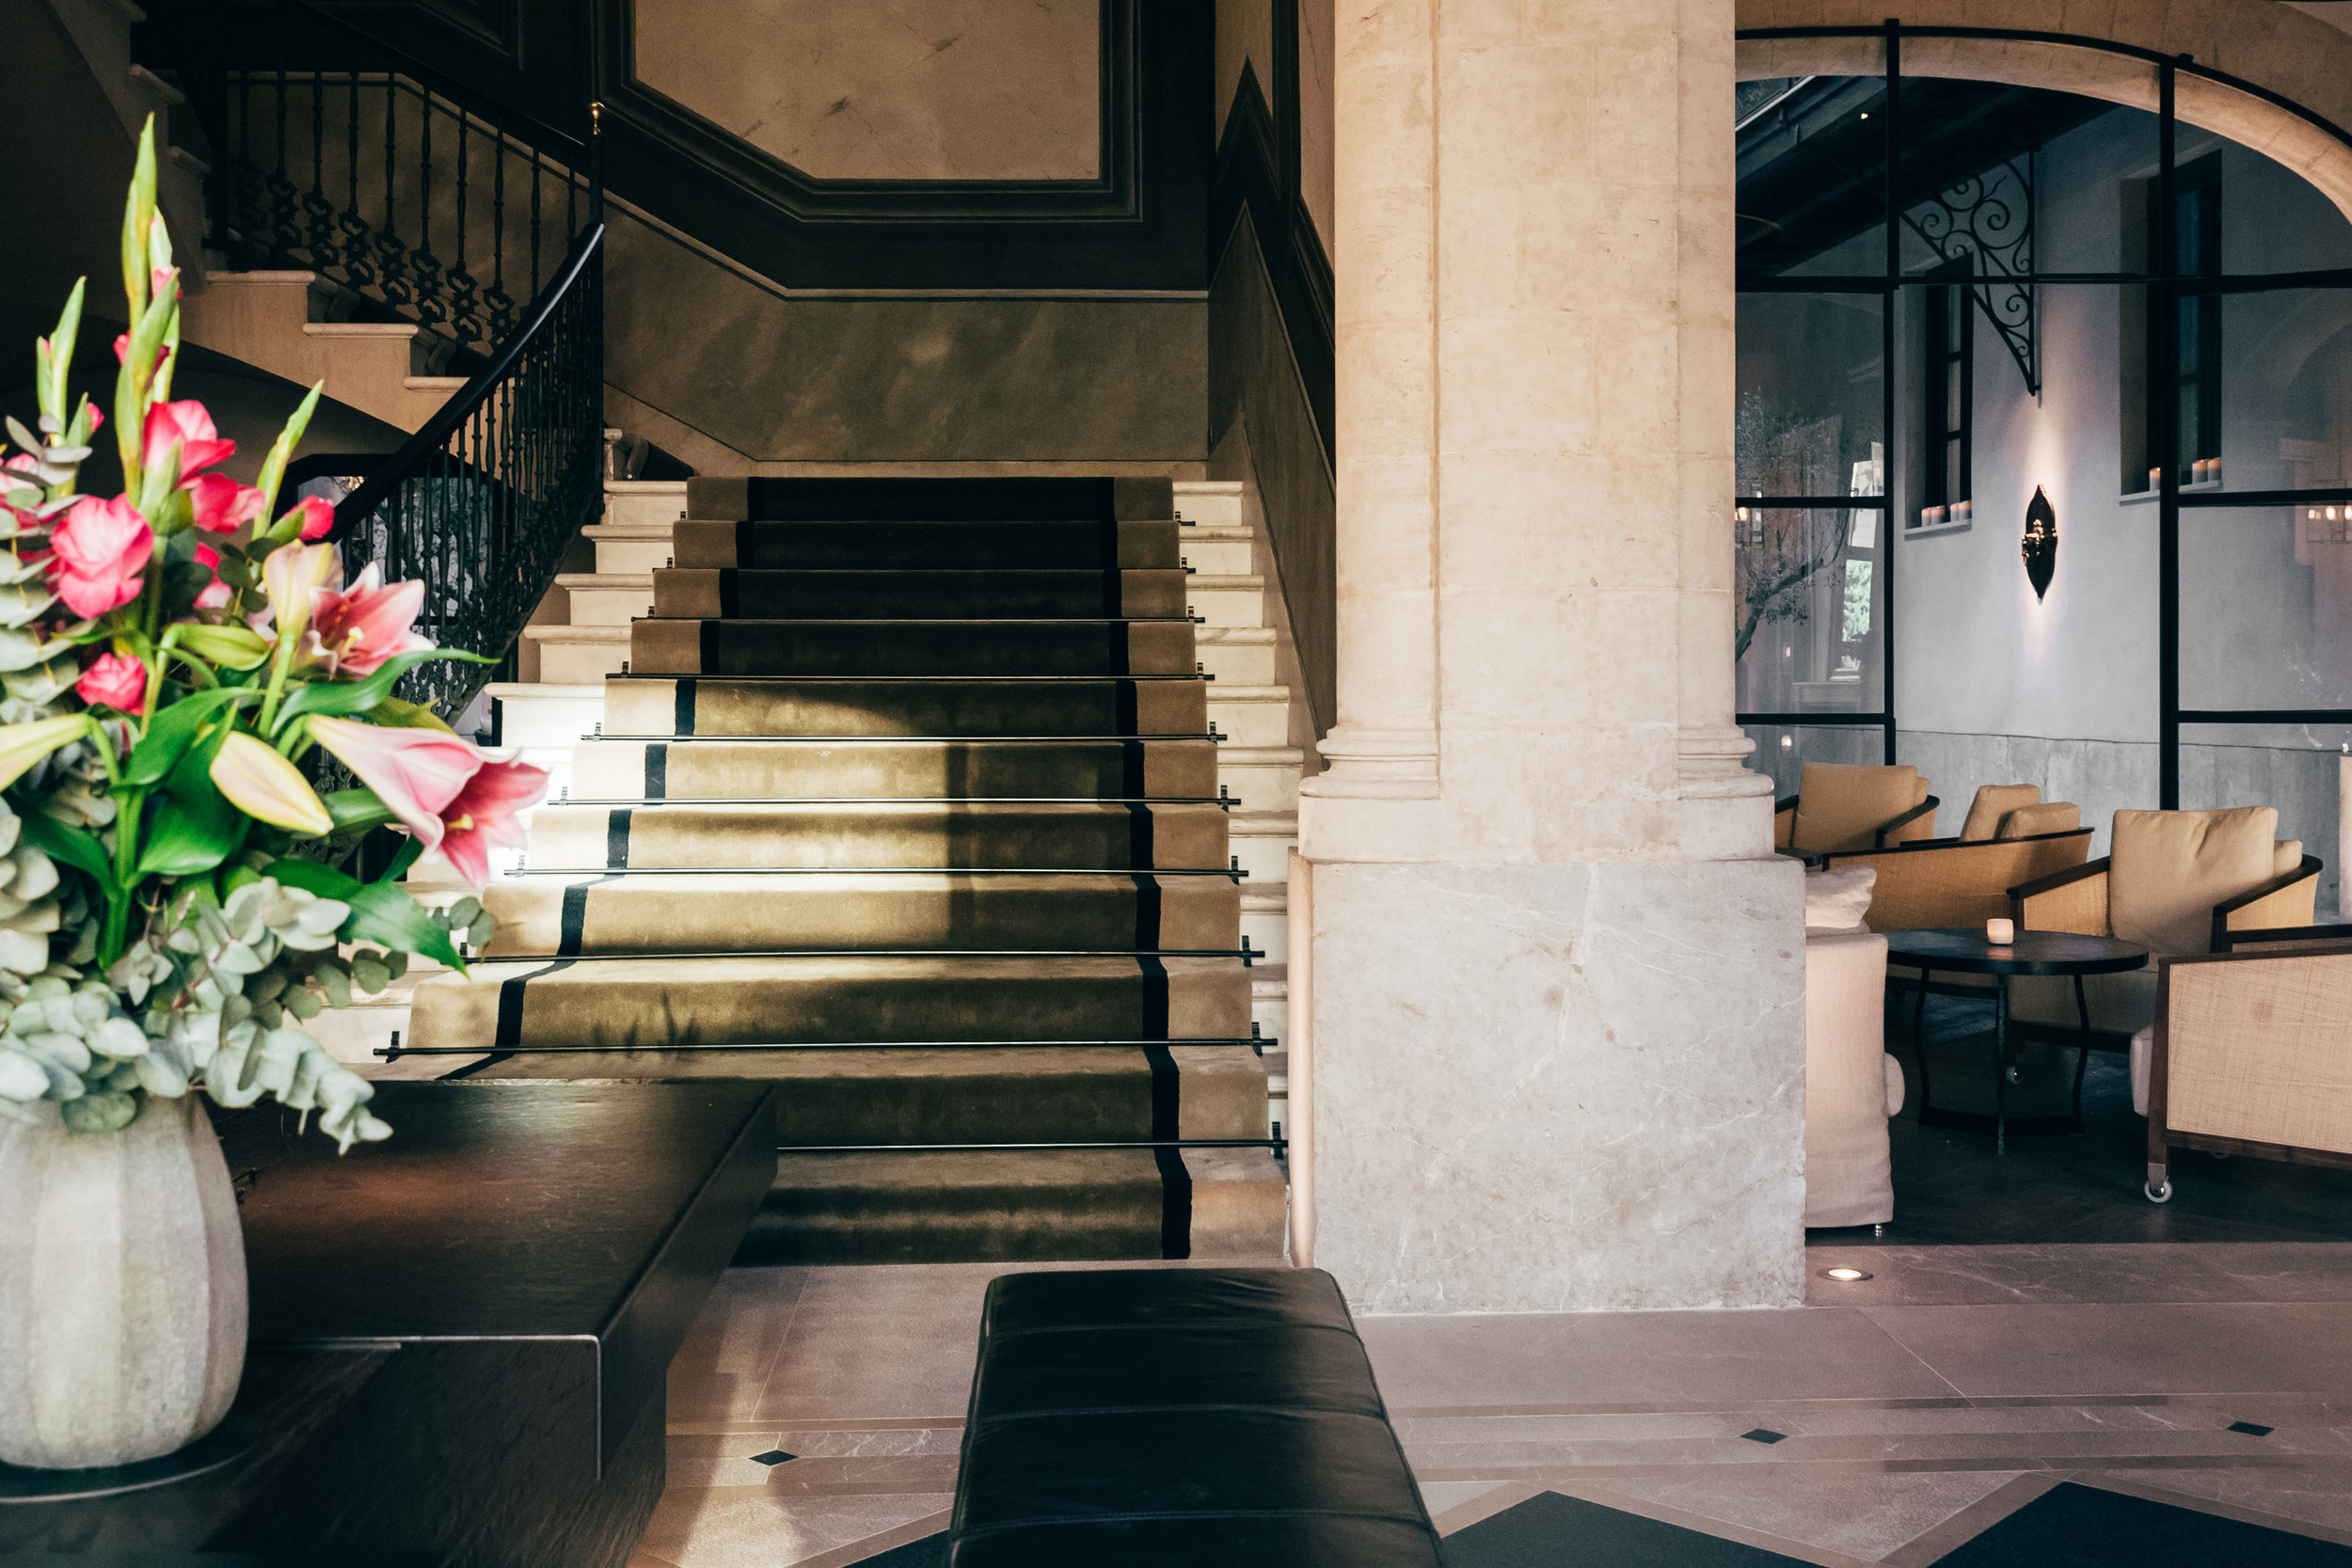 The majestic reception of Hotel Sant Francesc. Original features and specially commissioned artworks are all on display at this intimate property.